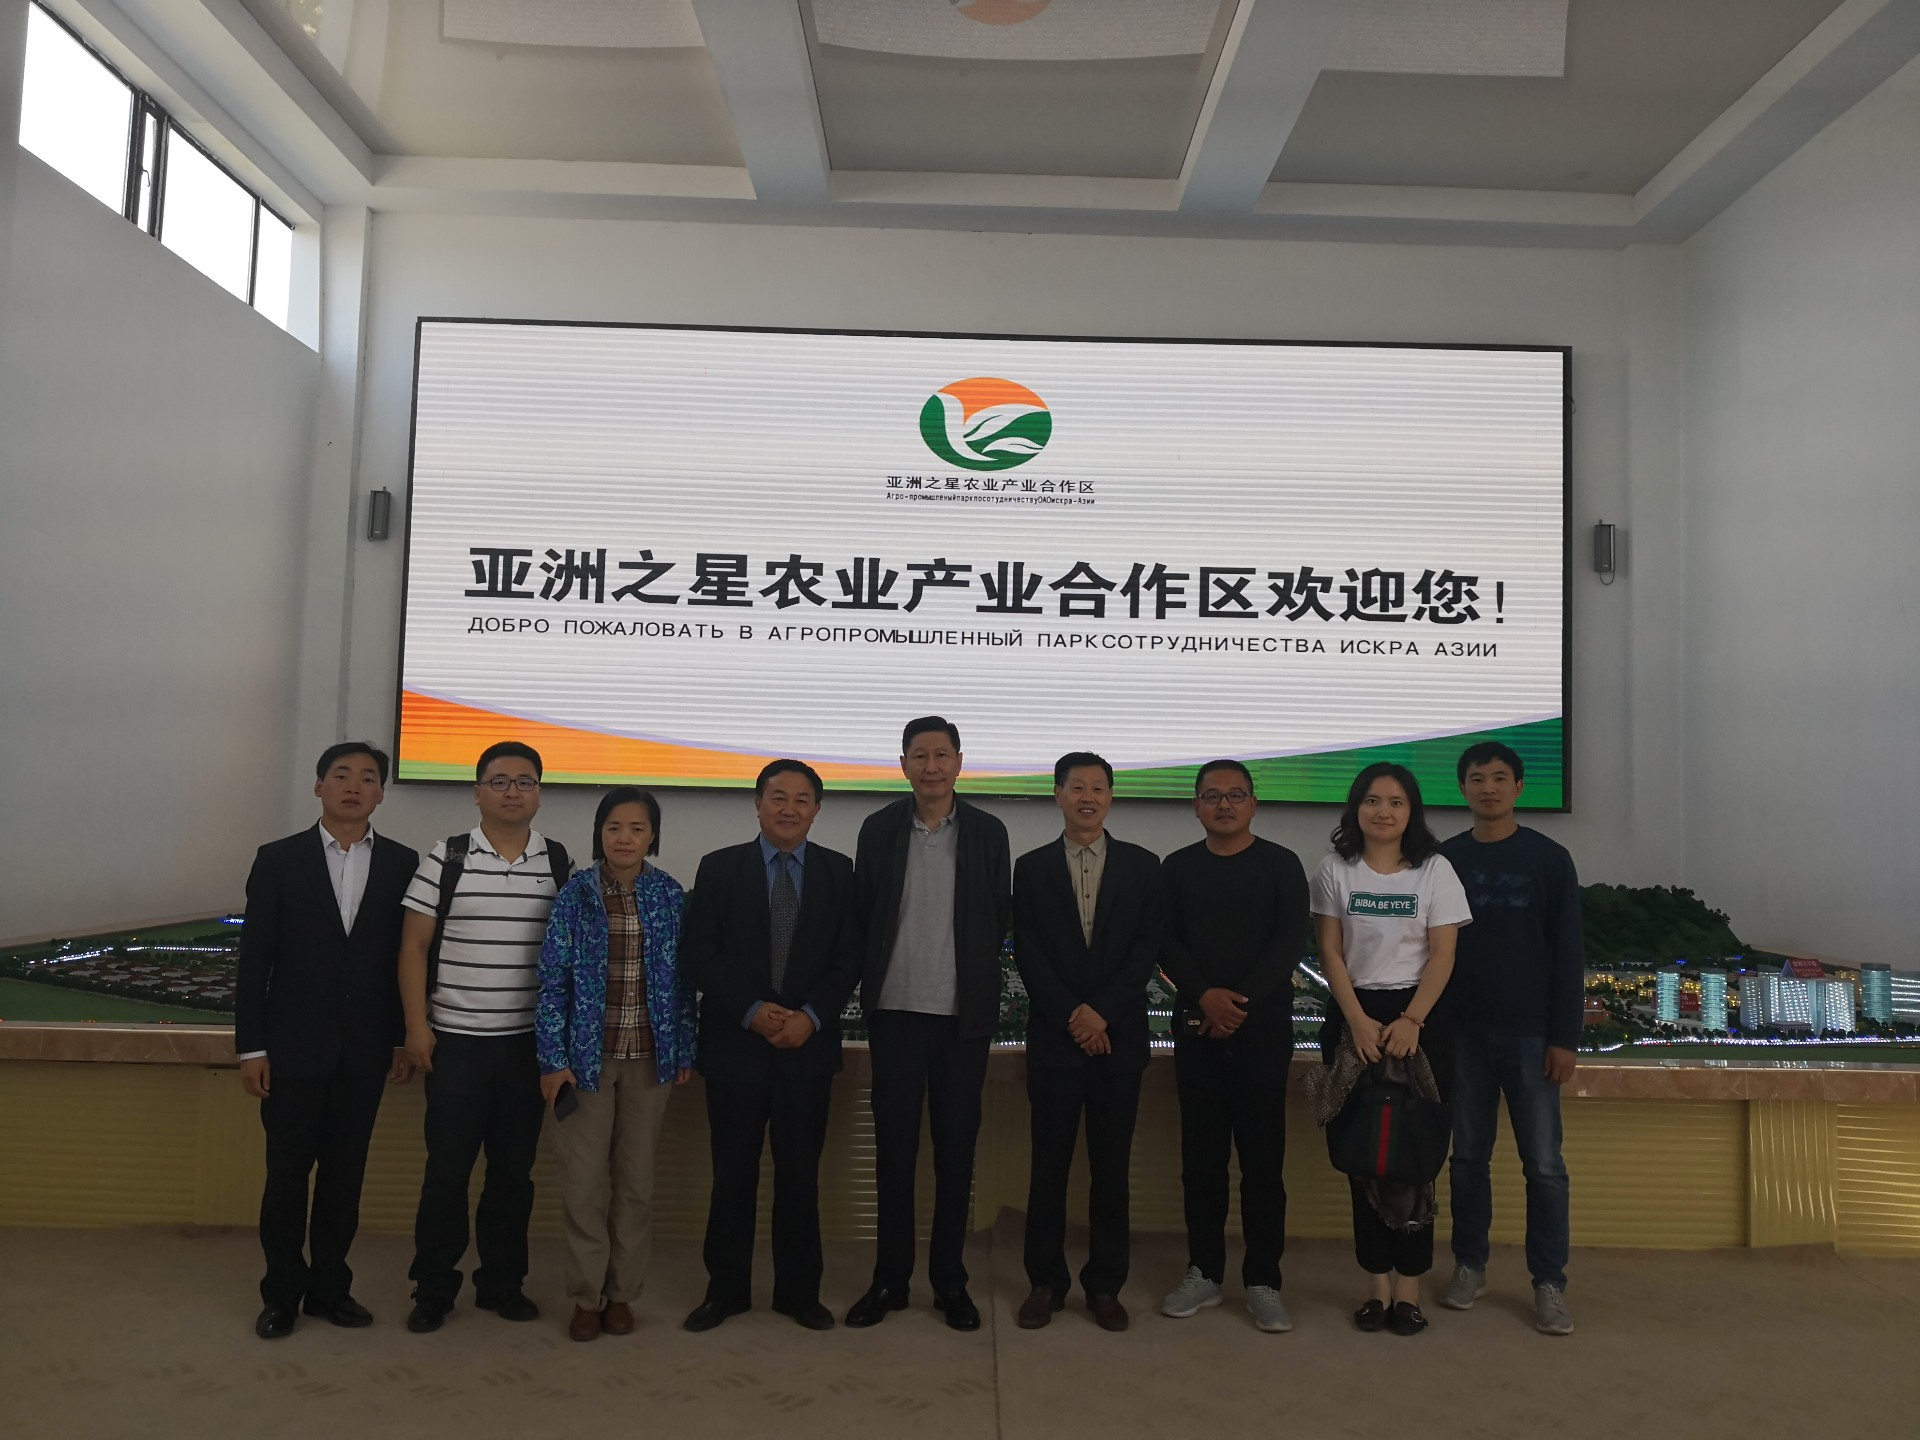 Ma Aiguo, deputy director of the Ministry of agriculture and rural areas, led the delegation to the